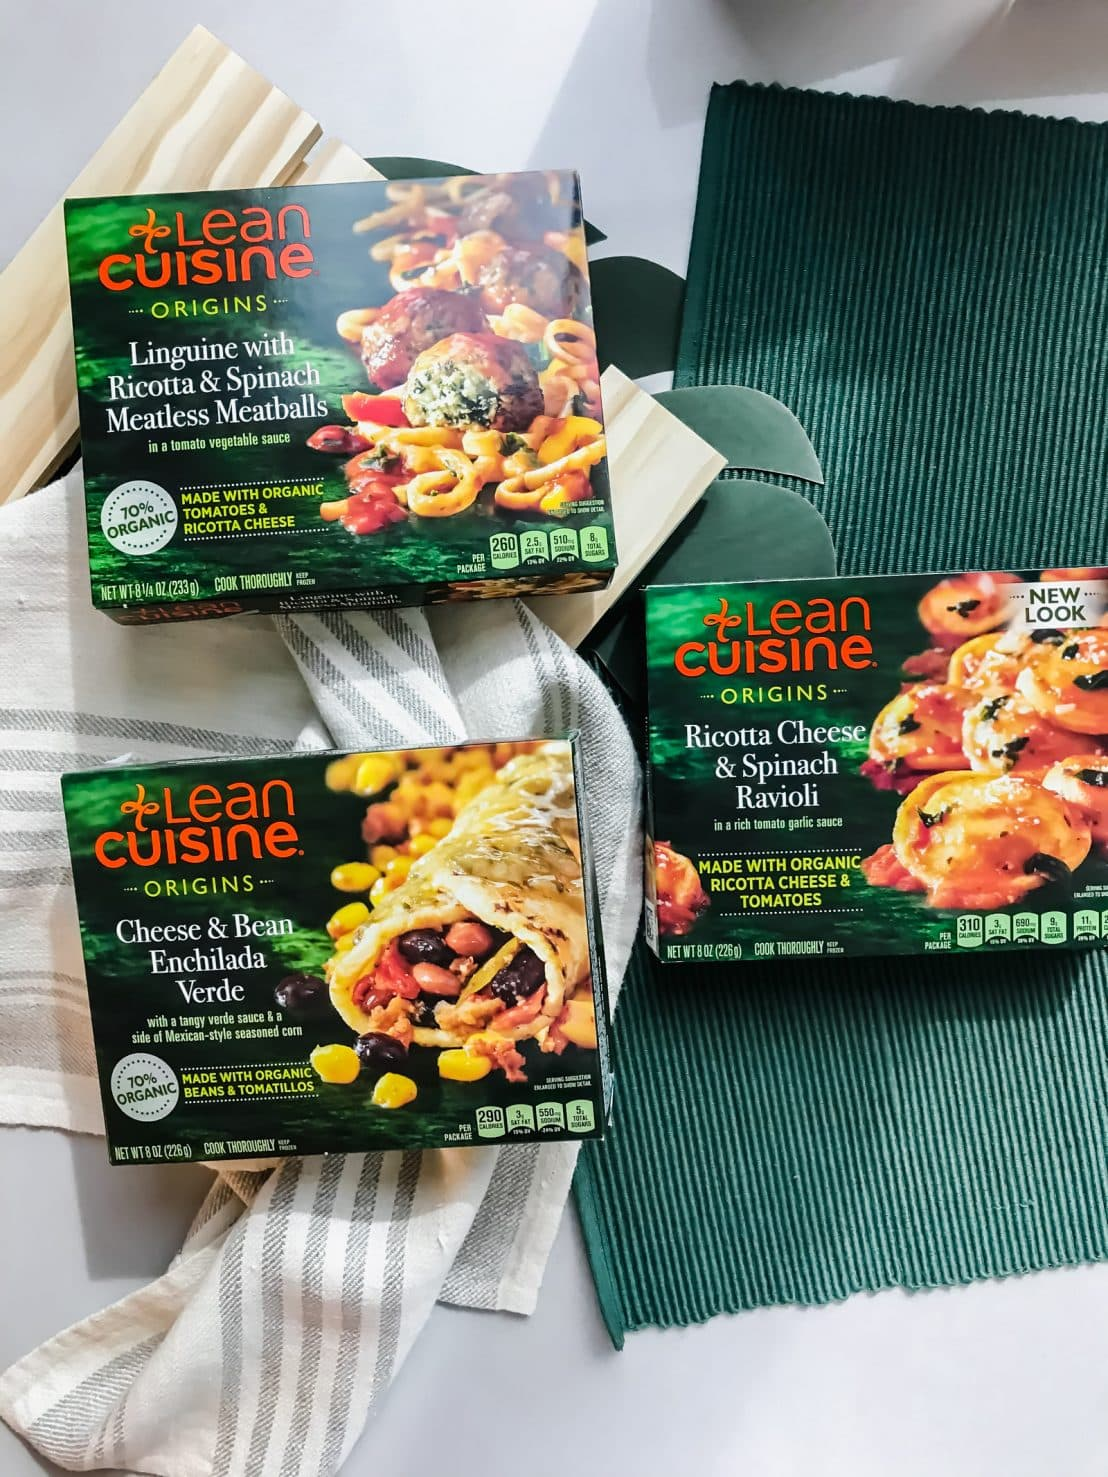 An overhead shot of three boxes of Lean Cuisine sitting on a green place mat.